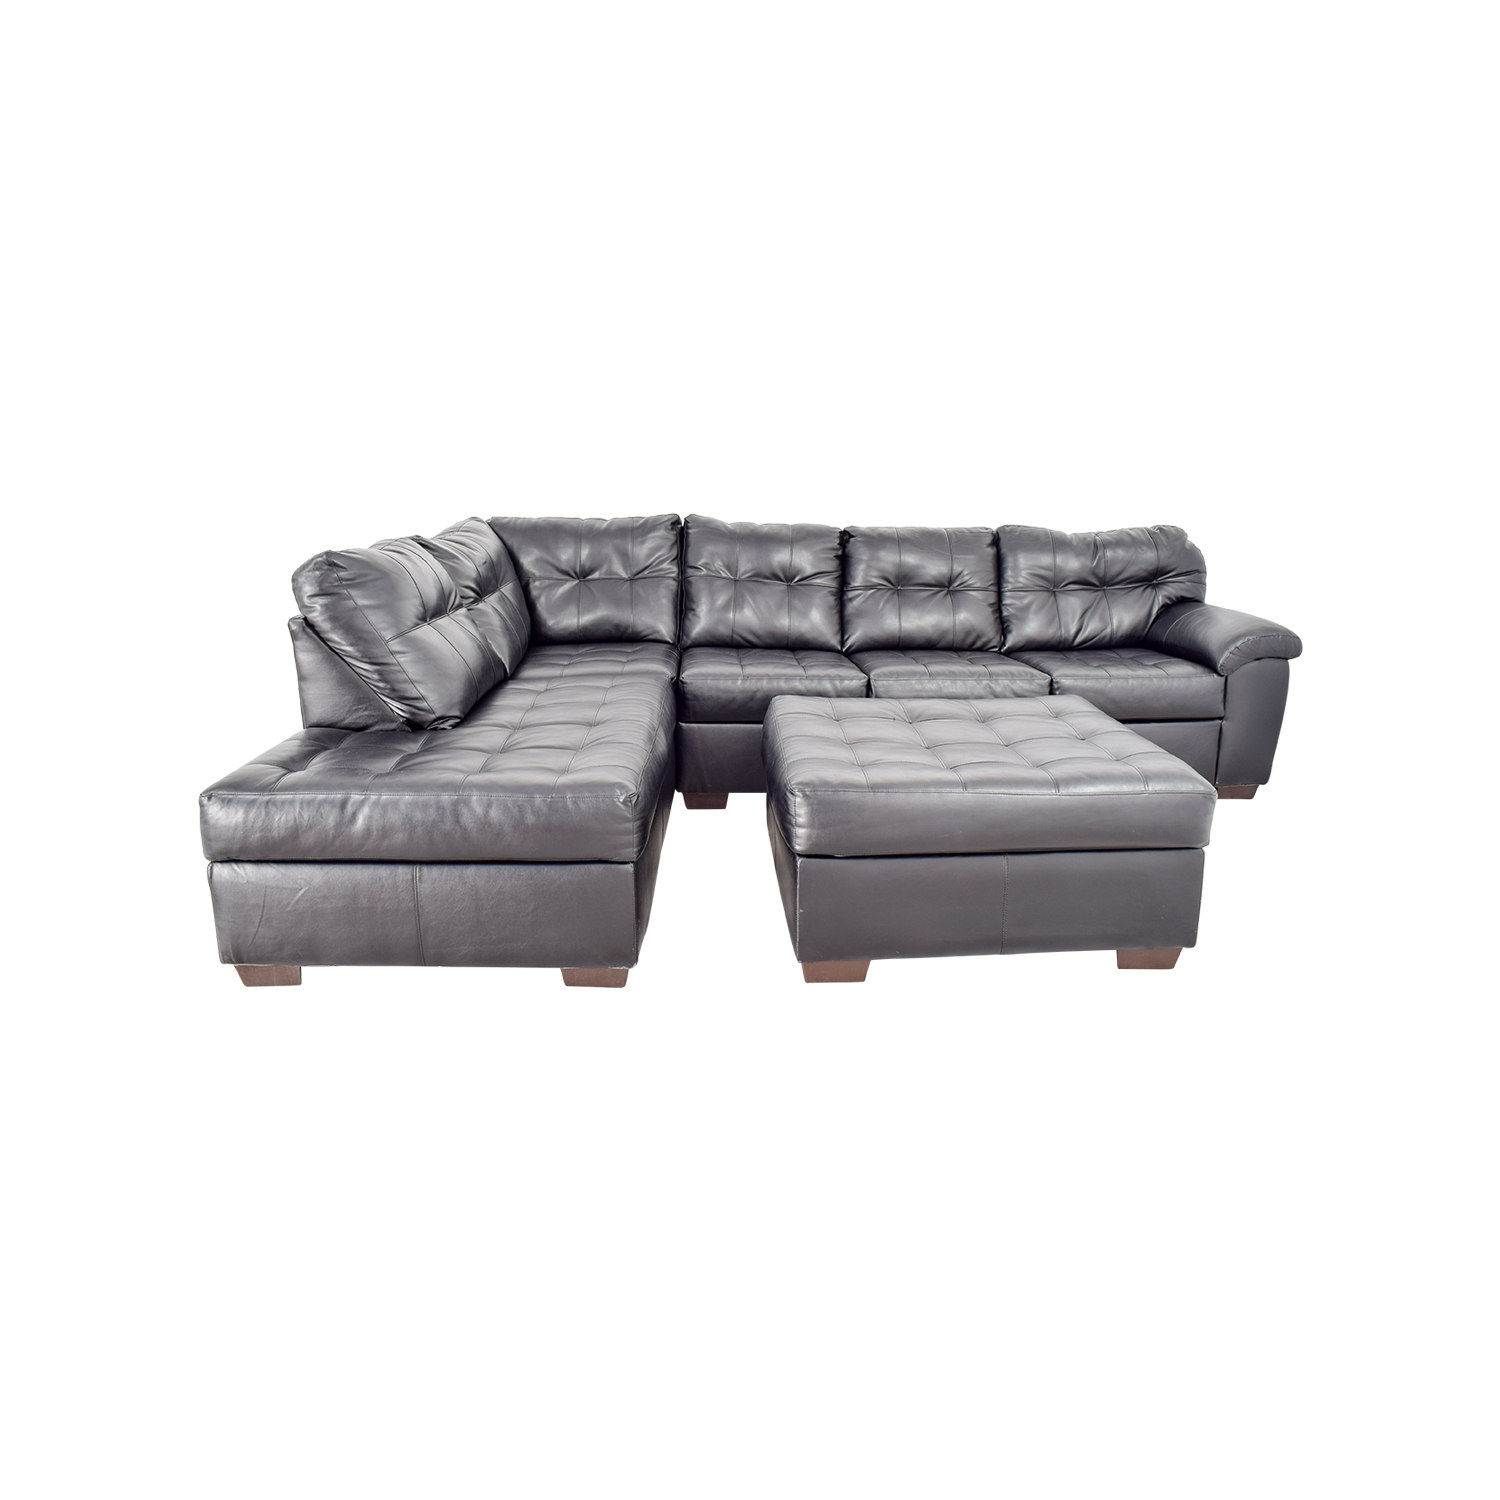 53% OFF Black Leather Tufted Sectional Sofa and Ottoman Sofas